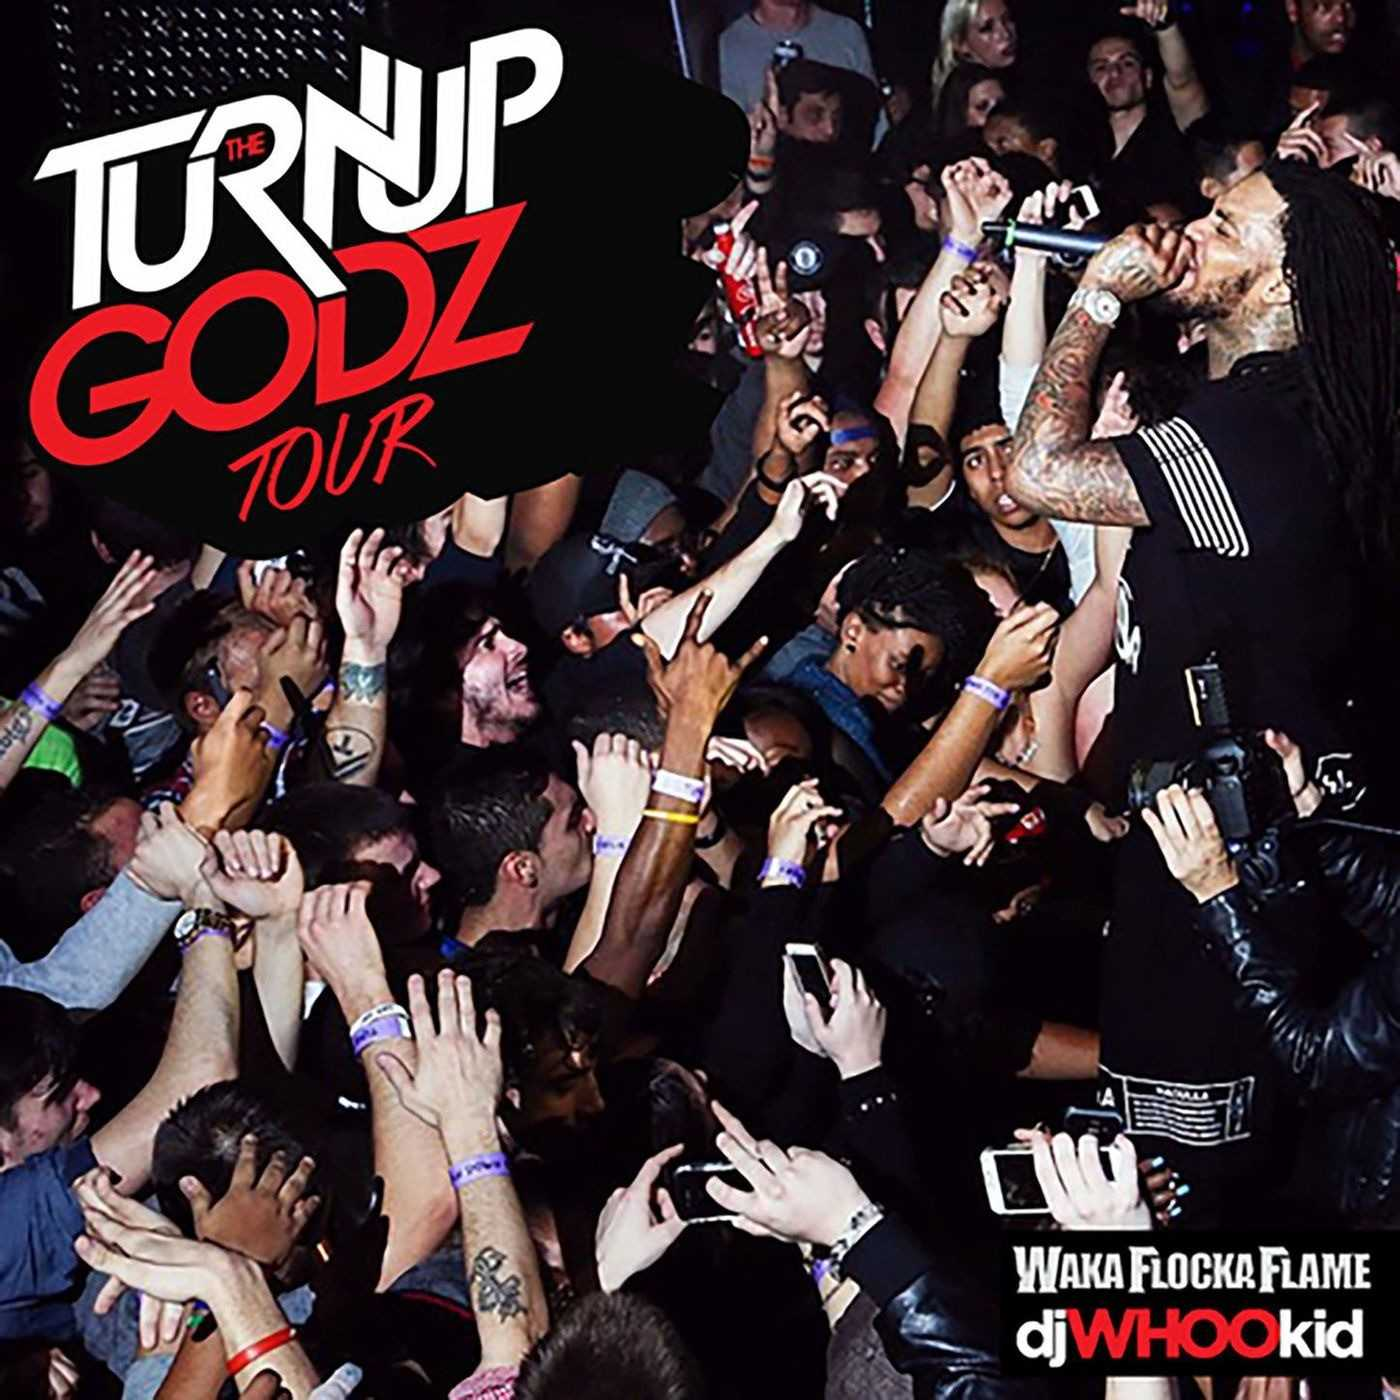 New Project: Waka Flocka Flame | The Turn up Godz Tour [Audio Stream]